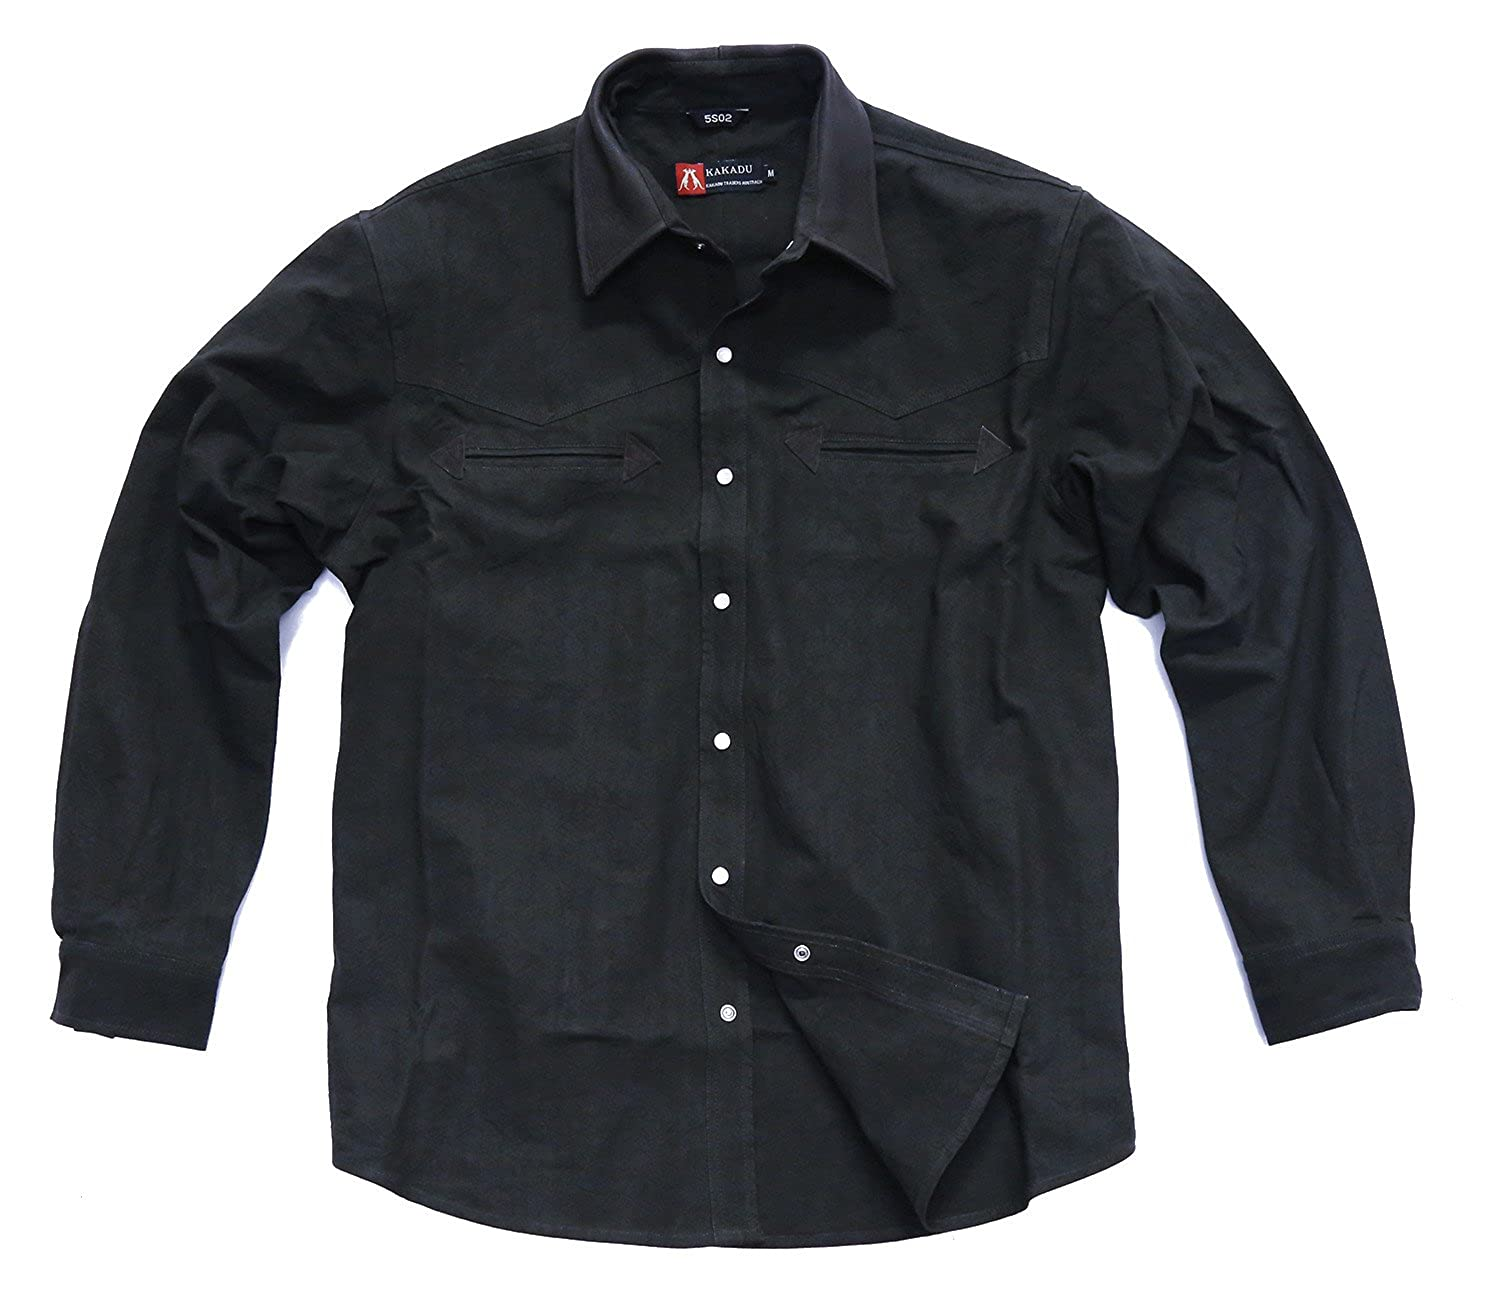 aeab16af9a2c3 Mens Outdoor Overshirt from Kakadu Australia, 2nd choice on sale ...